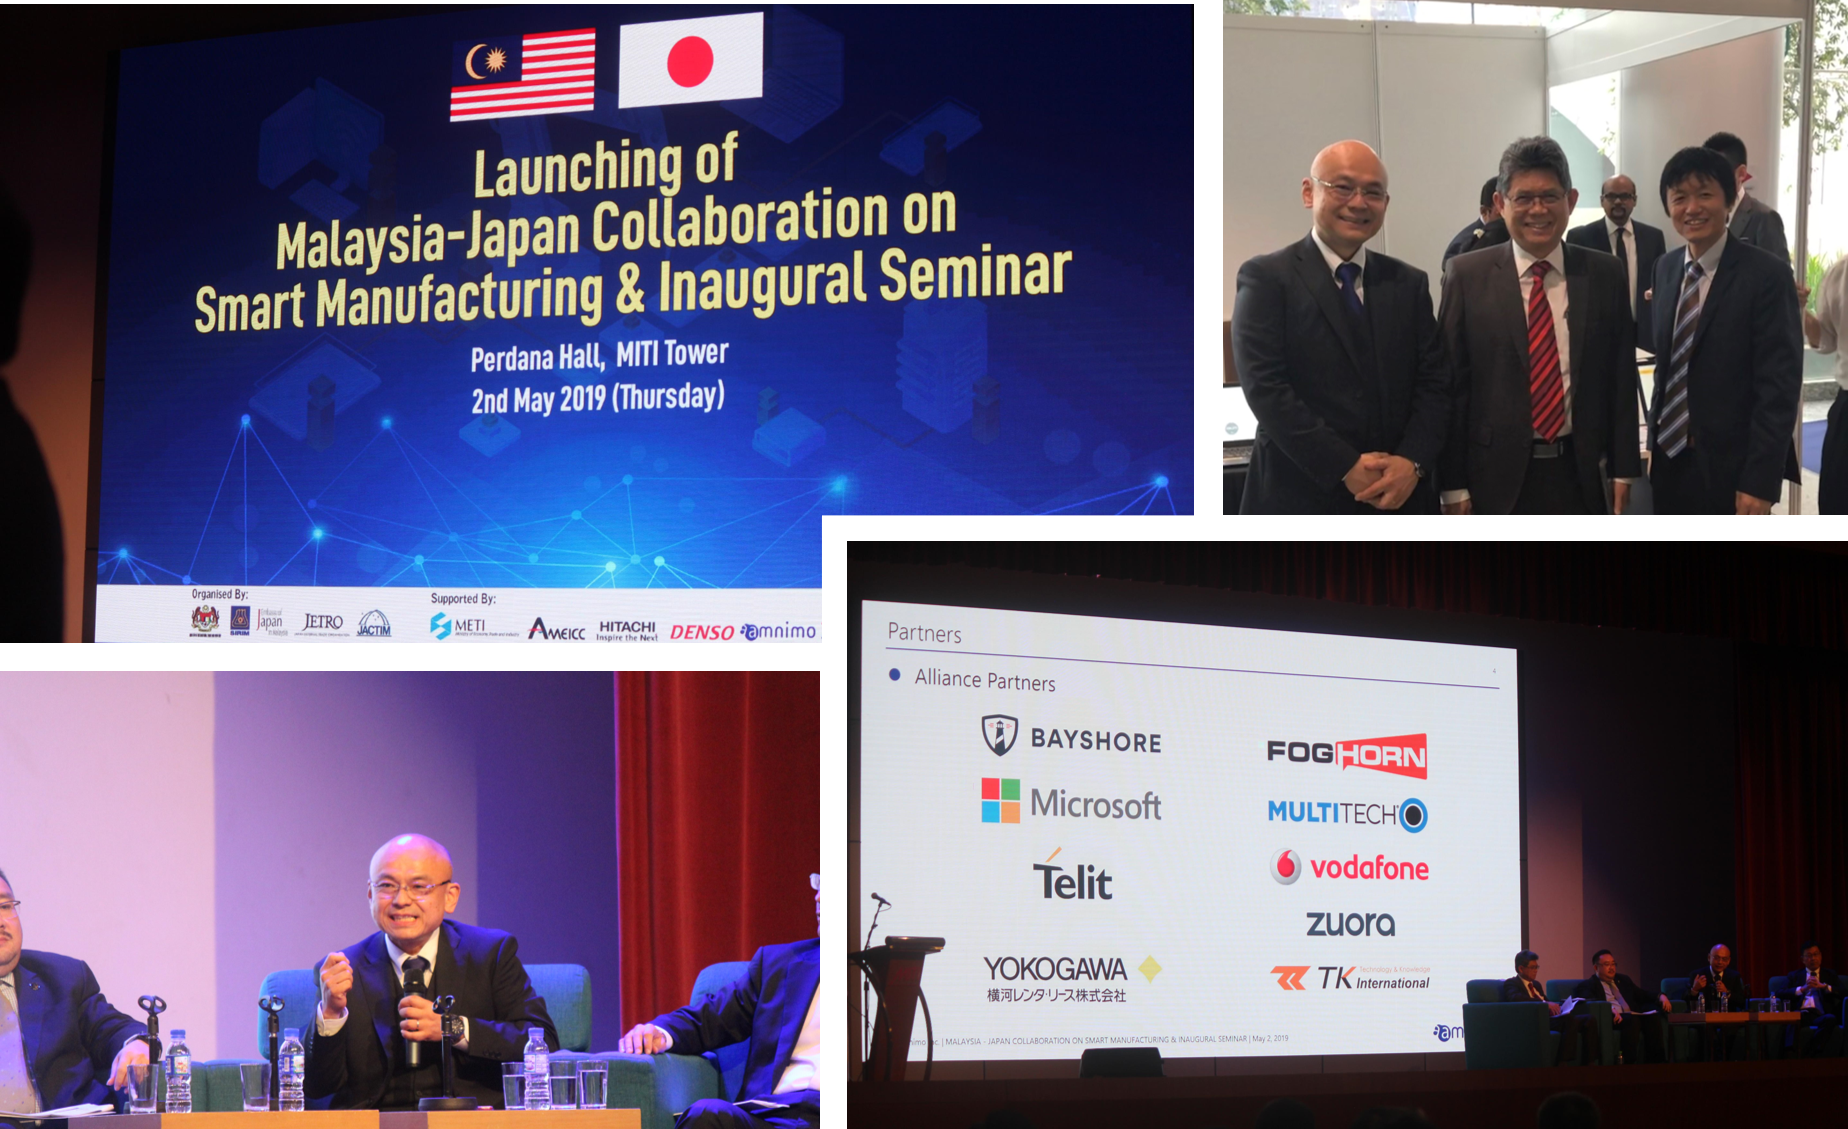 「LAUNCHING OF MALAYSIA - JAPAN COLLABORATION ON SMART MANUFACTURING & INAUGURAL SEMINAR